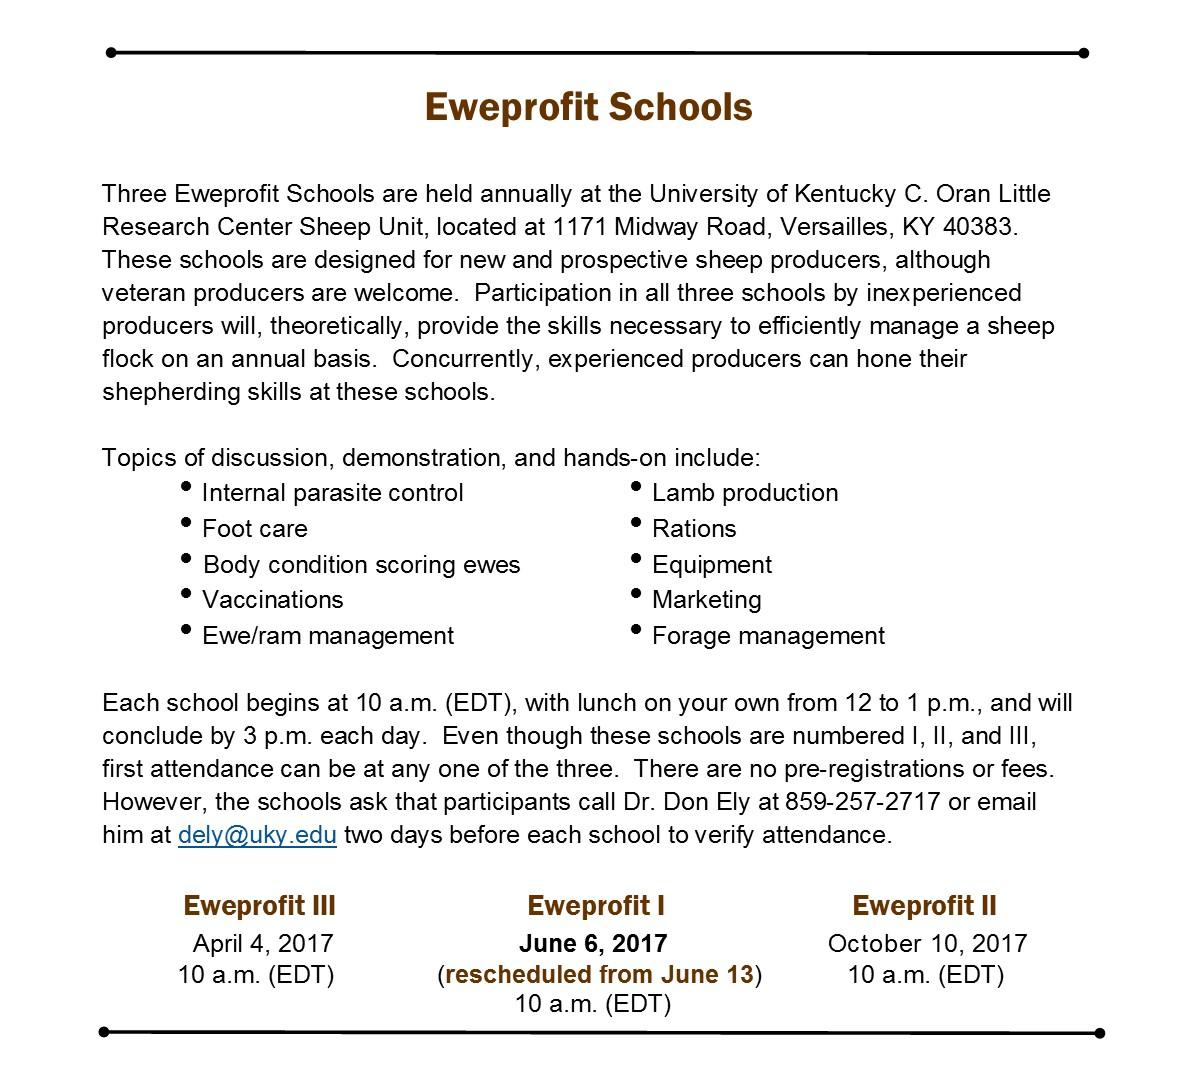 Eweprofit School information